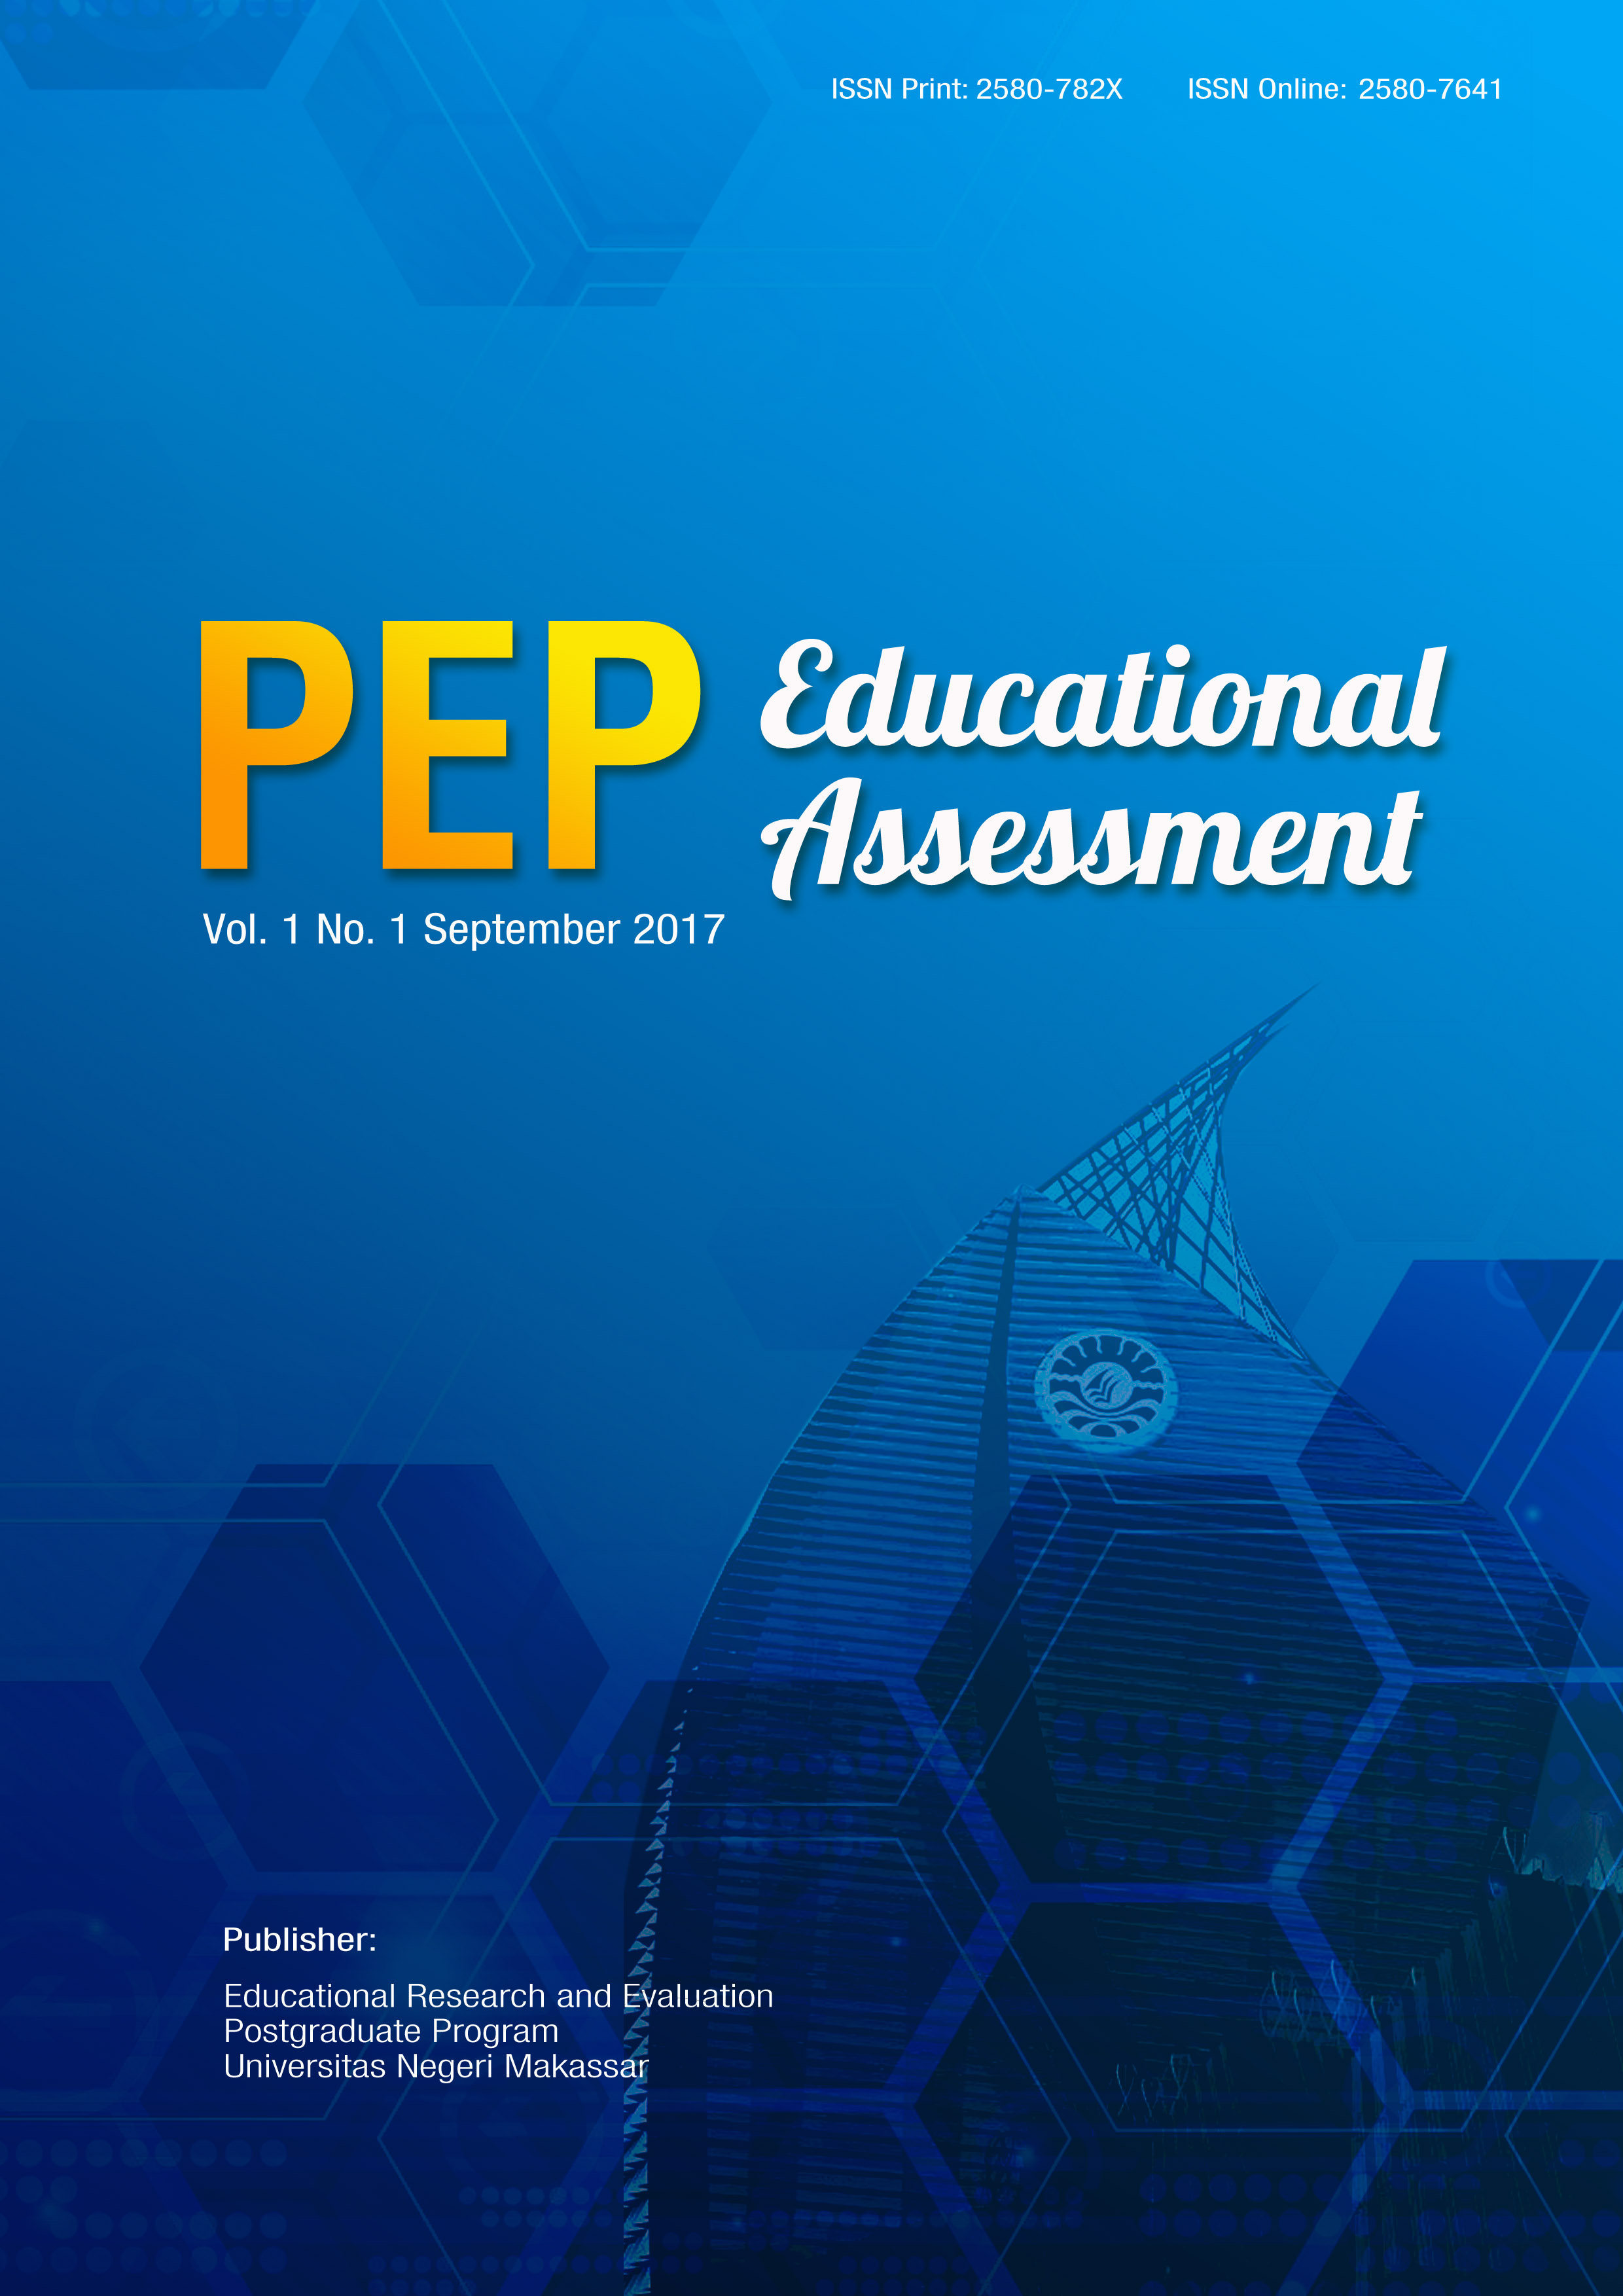 PEP Educational Assessment